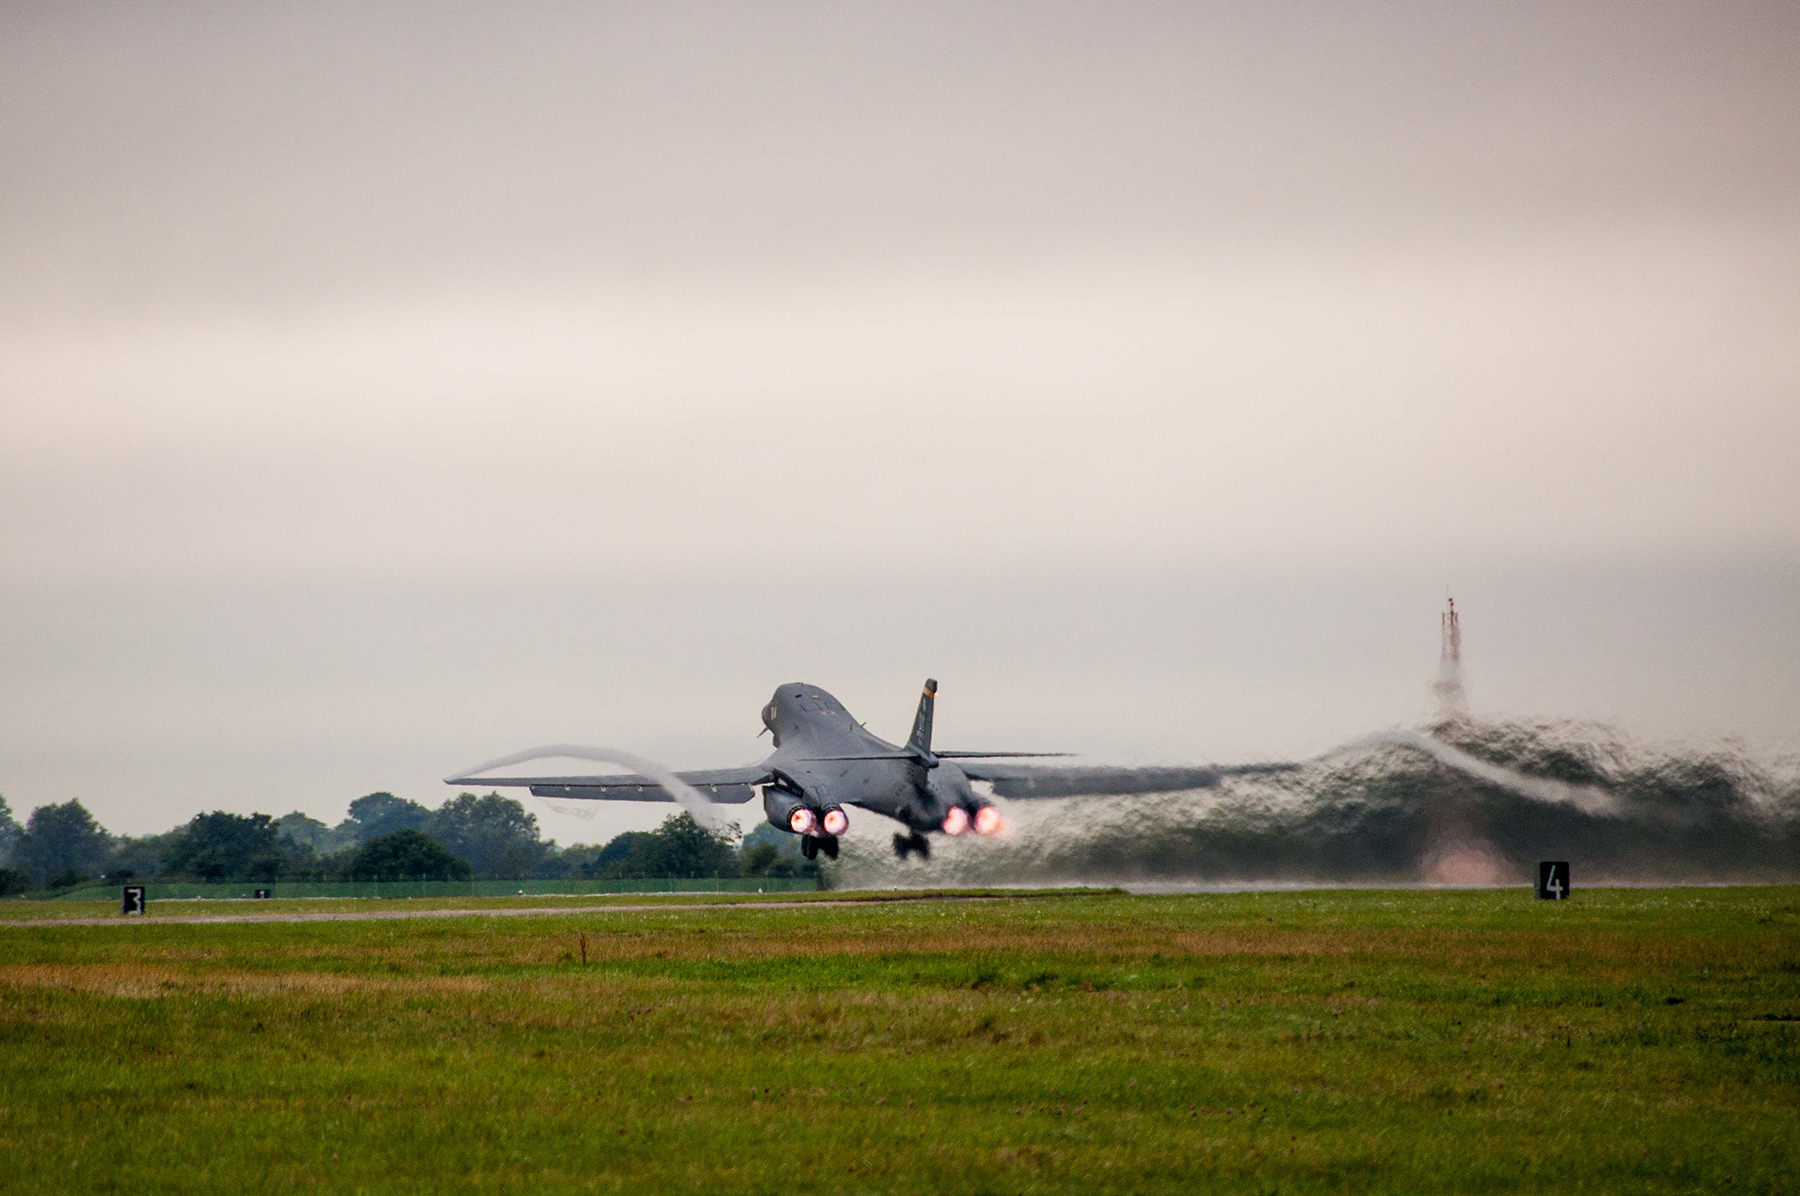 A B-1B Lancer from the 7th Bomb Wing, Dyess Air Base, Texas, Air Force Global Strike Command, takes to the skies on Sep. 5, 2016 as the first day of participation in Exercise Ample Strike 2016, an annual Czech Republic-led exercise with 300 participants from 18 countries scheduled for Sept. 5-16. (U.S. Air Force photo by 1st Lt. Monique Roux/Released)